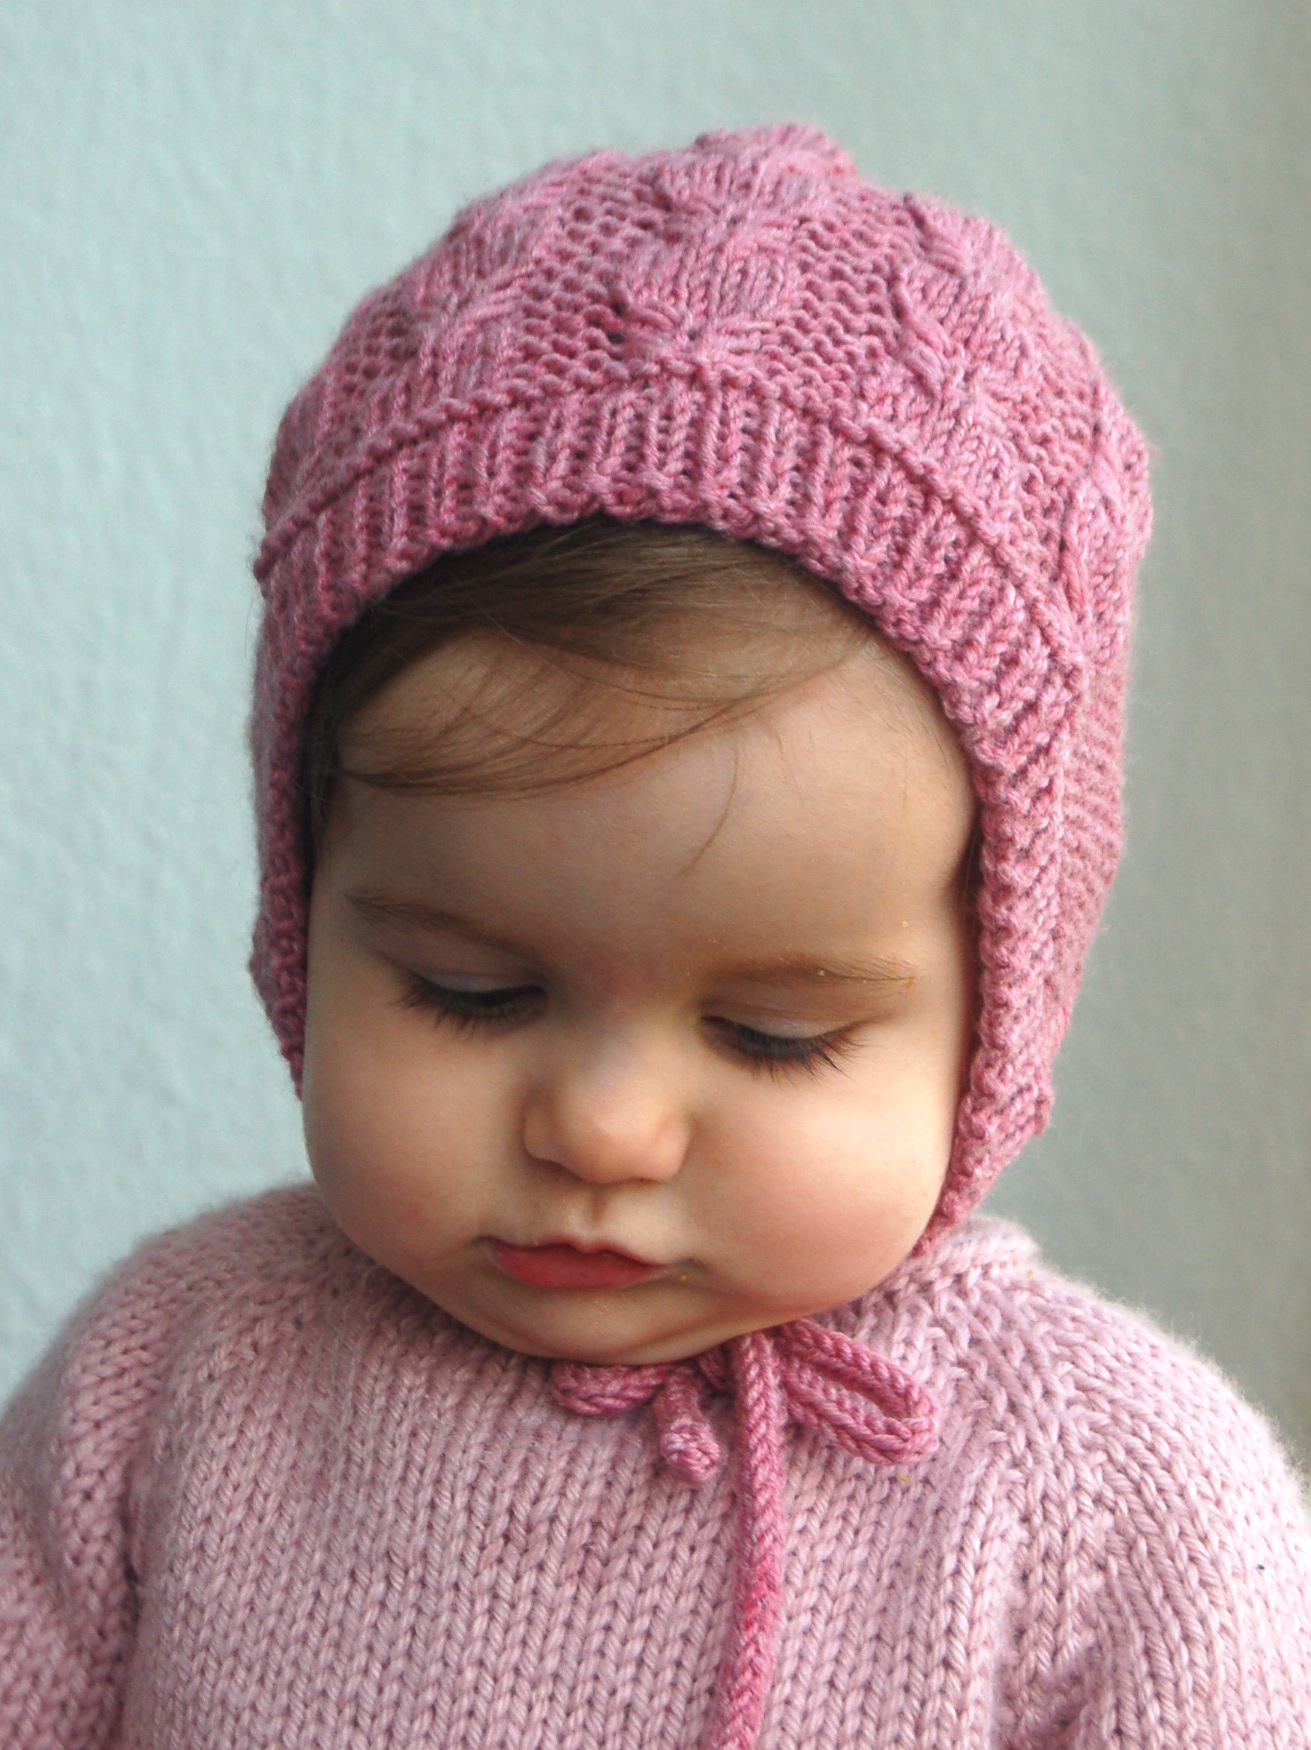 Tricot beguin bebe